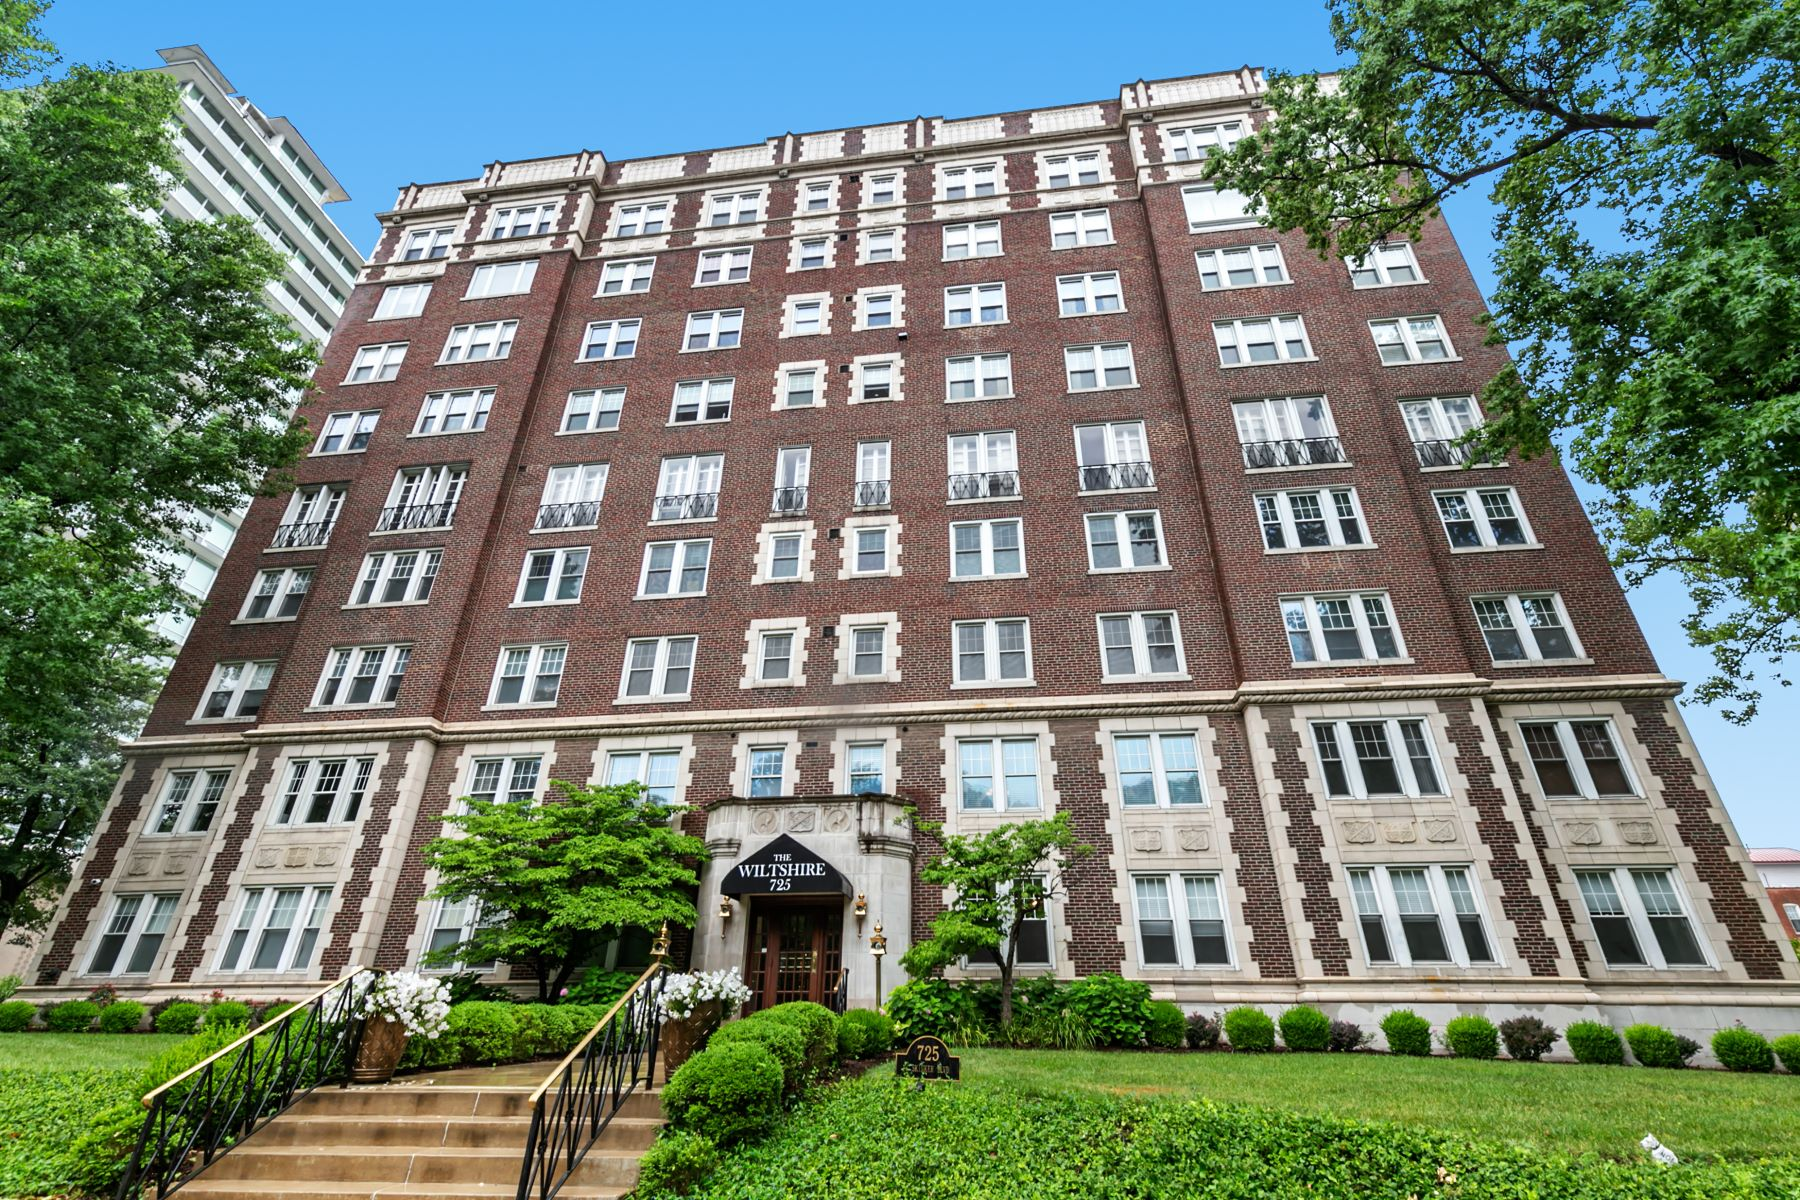 Property for Sale at Renowned architecture and views of Forest Park in desireable DeMun! 725 South Skinker Boulevard #3C St. Louis, Missouri 63105 United States